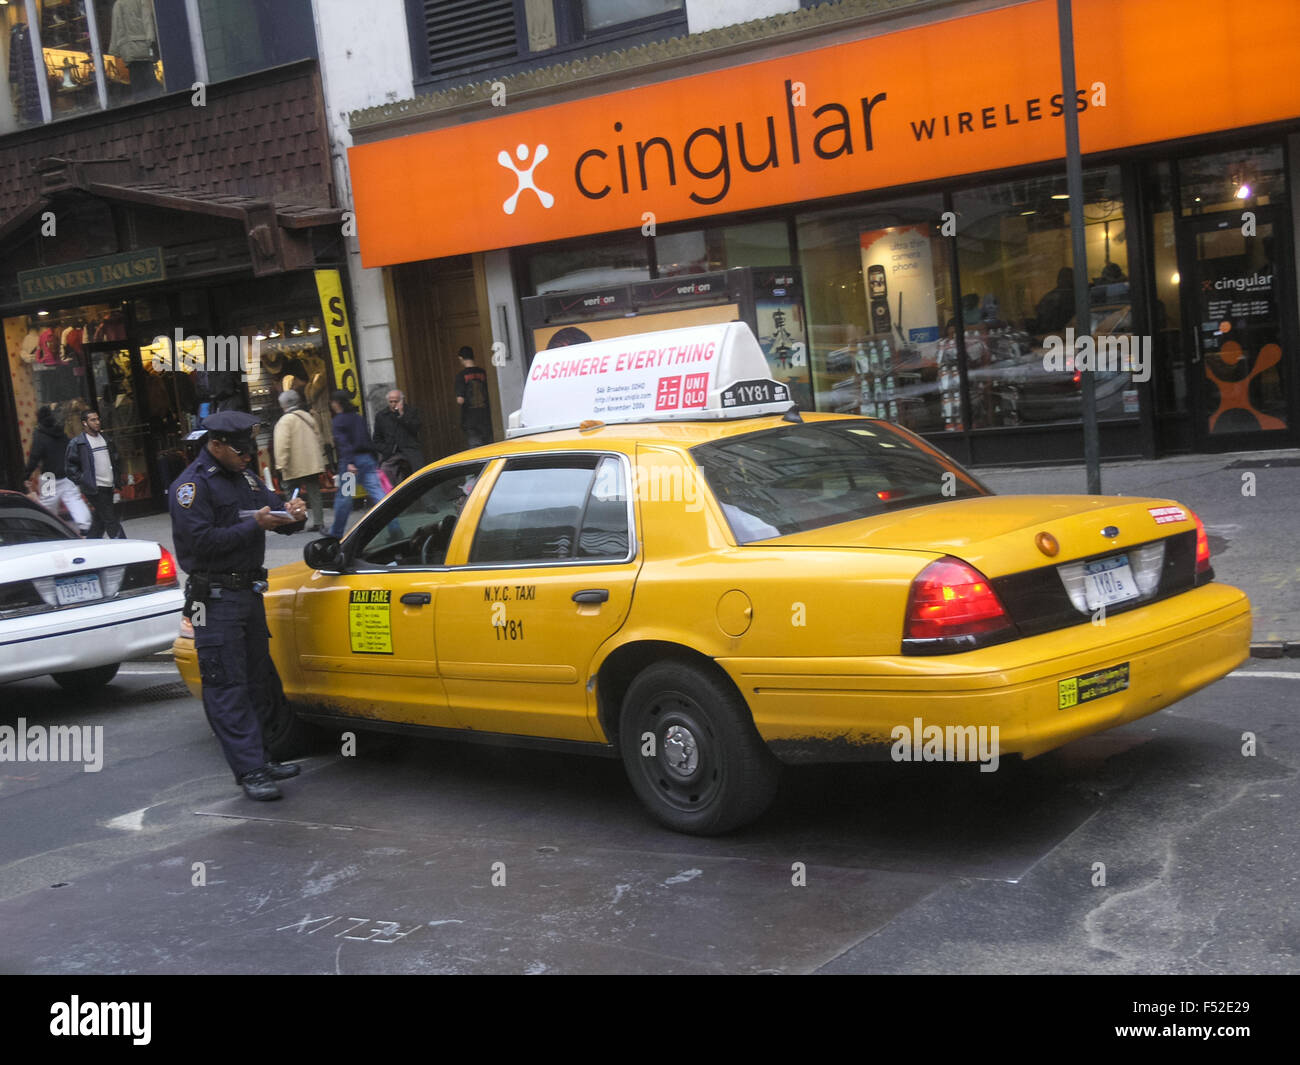 new-york-yellow-cab-getting-a-ticket-new-york-usa-F52E29.jpg